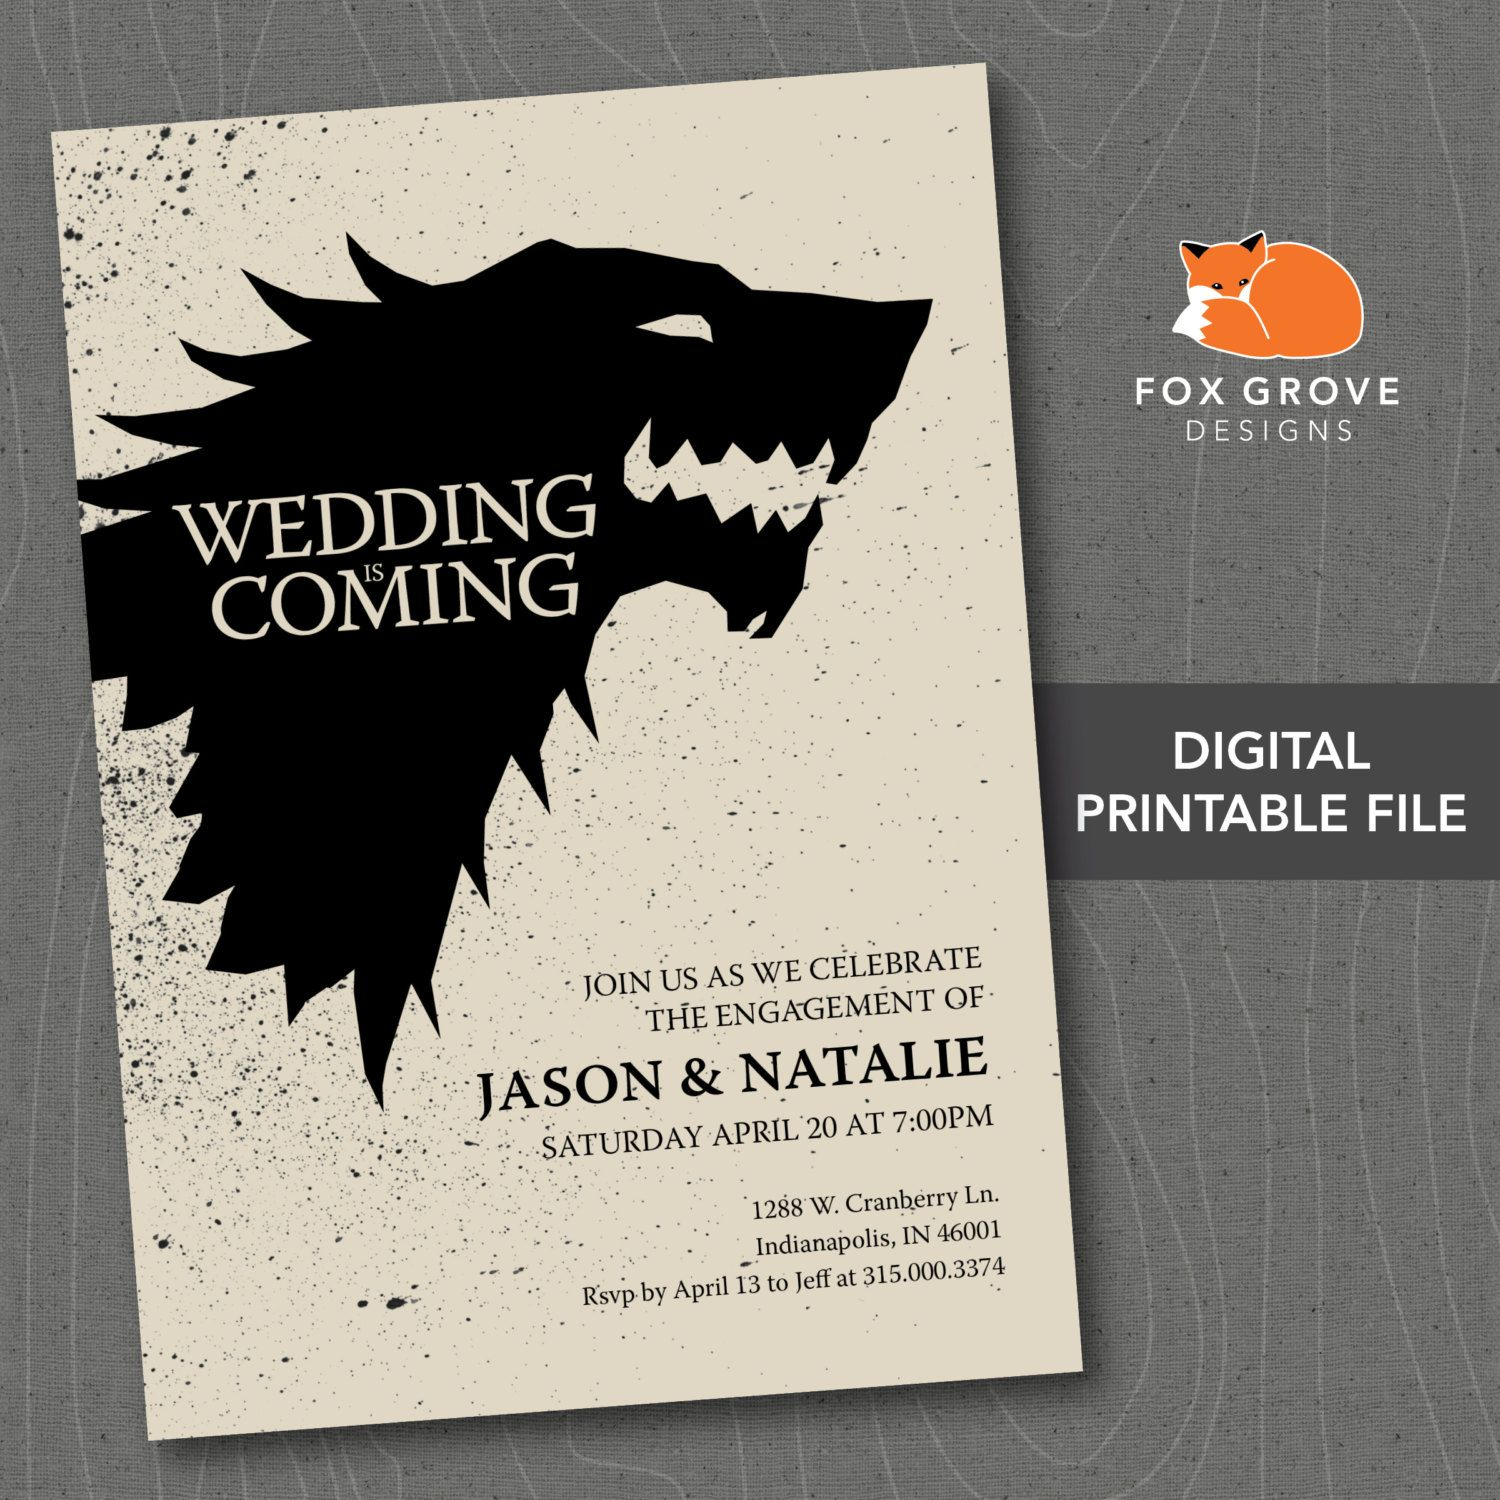 Printable Game Of Thrones Wedding Is Coming Engagement Party Invitation C Printable Engagement Party Invitations Engagement Invitations Party Invite Design